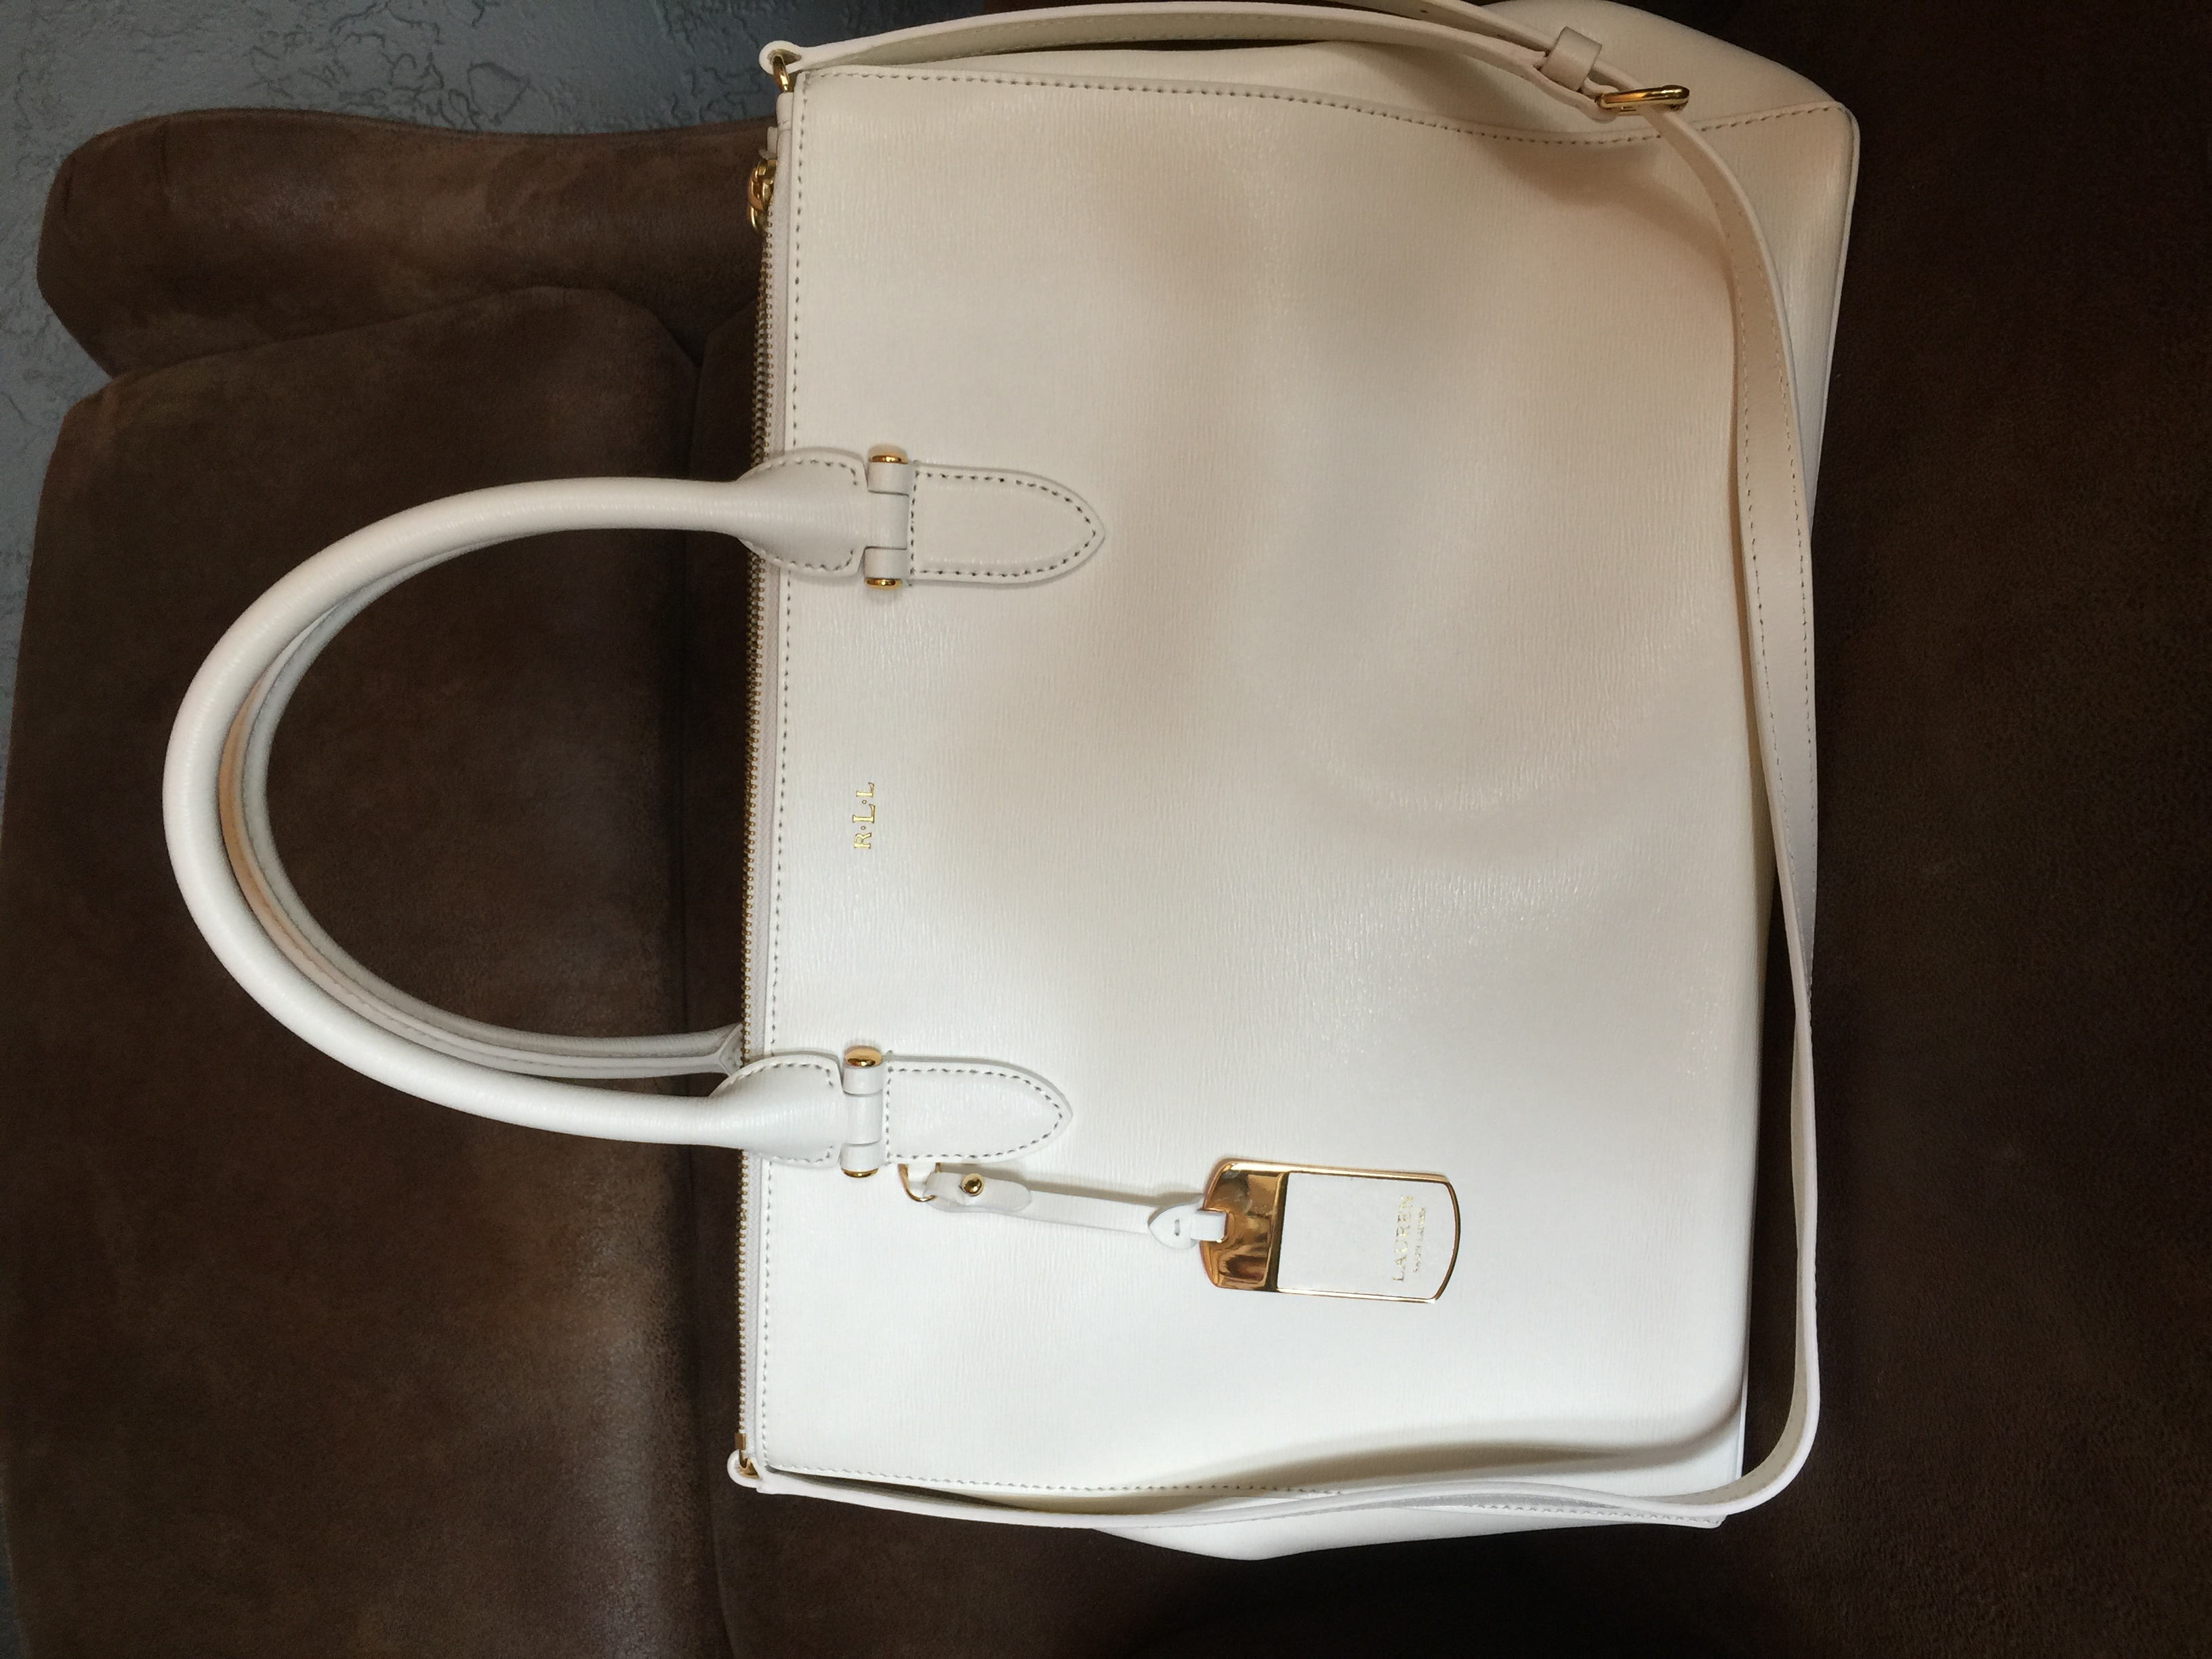 RL bag bought at TJ Max this winter. I wanted a bag in this color all last summer and finally found one I love!